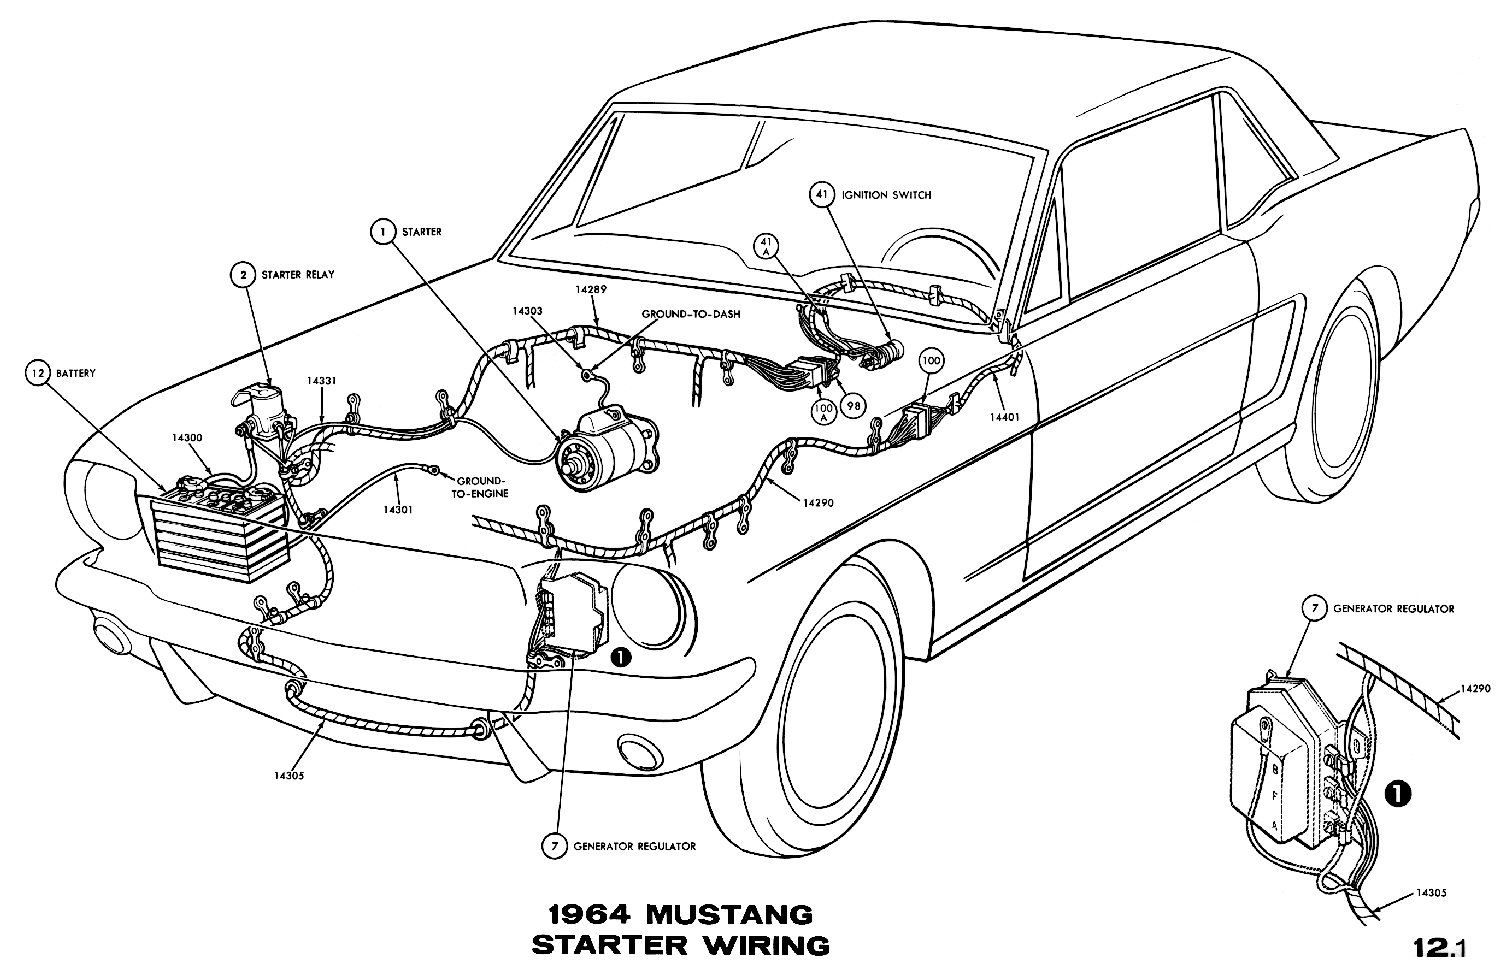 1964 Mustang Wiring Diagrams Average Joe Restoration Externally Regulated Alternator Diagram Sm1964d Starter Pictorial Or Schematic